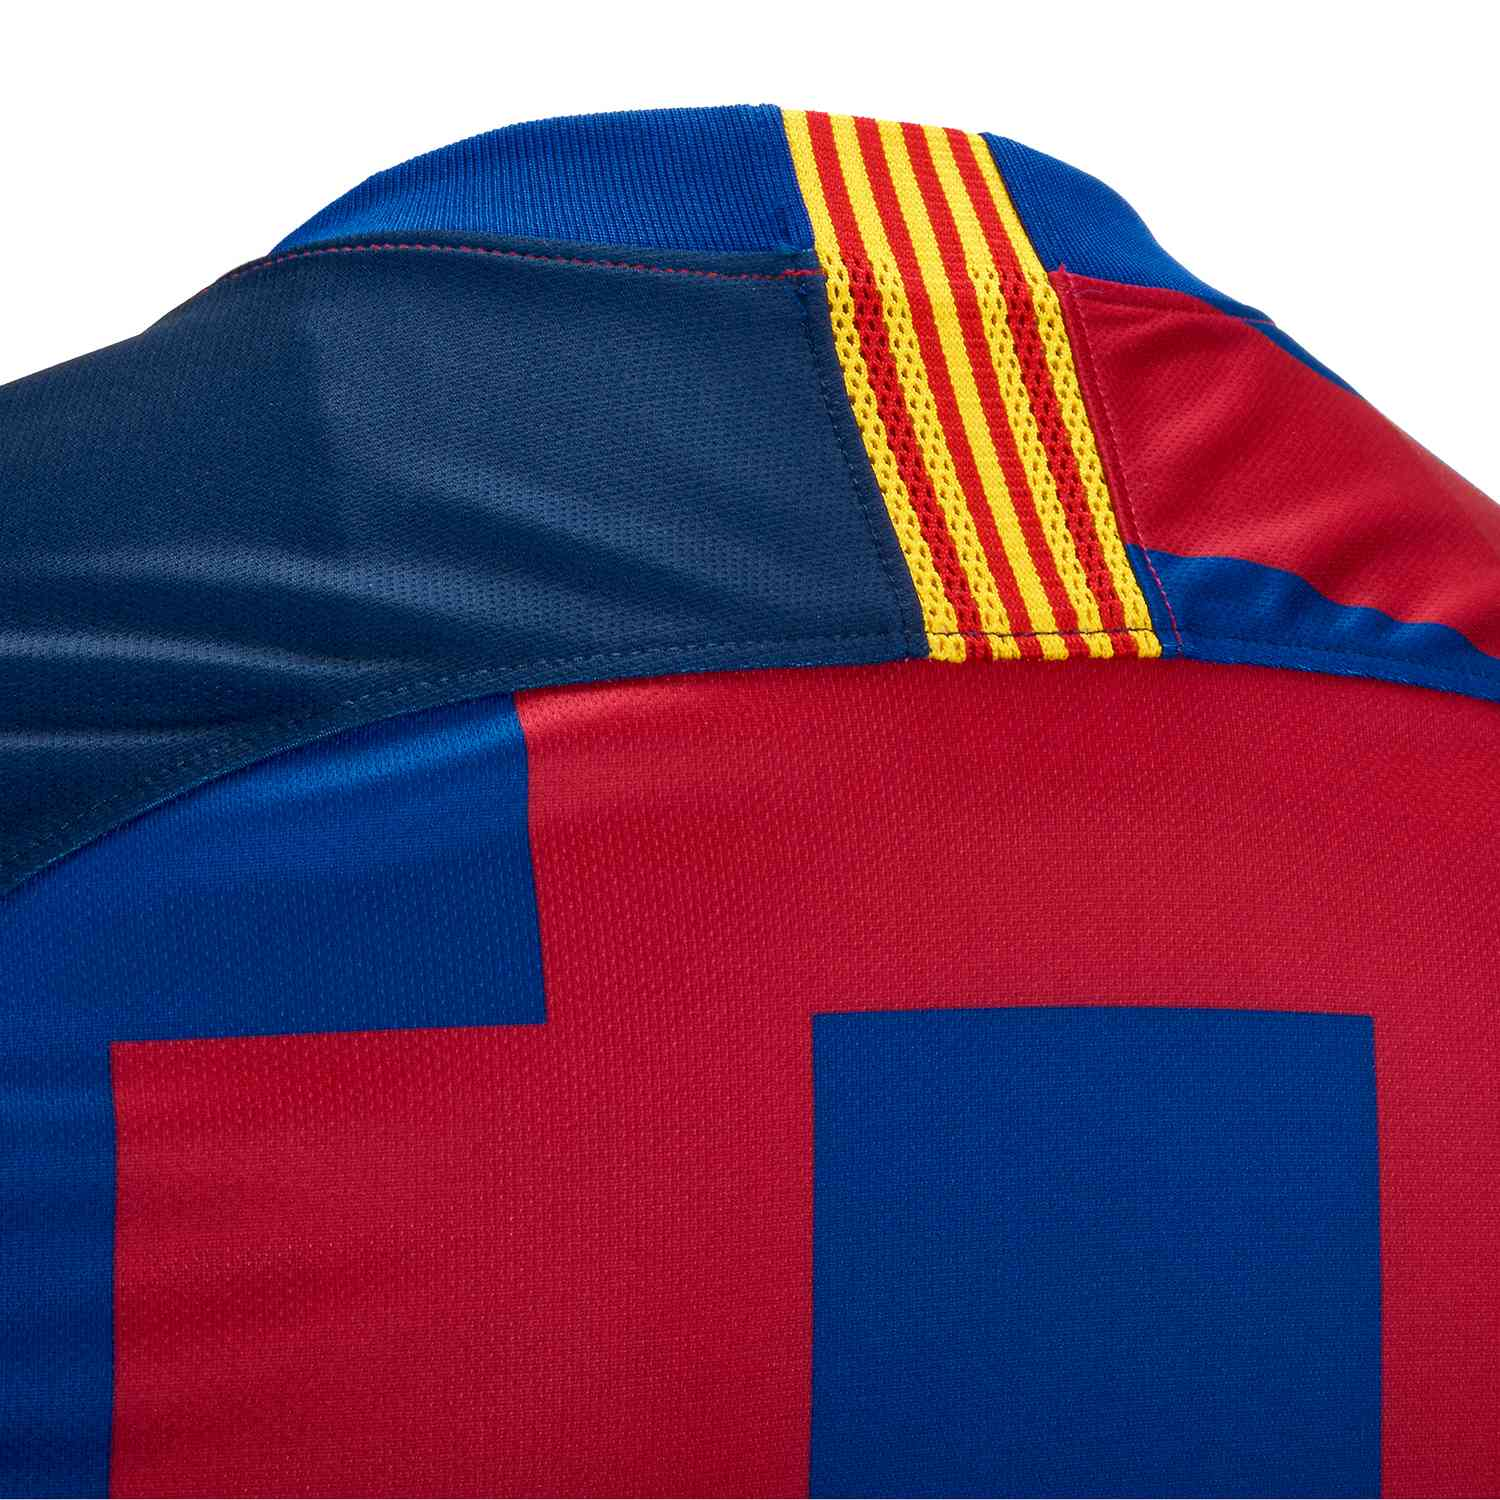 7ee783e2a38 Nike and Barcelona 20th Anniversary Home Jersey - SoccerPro